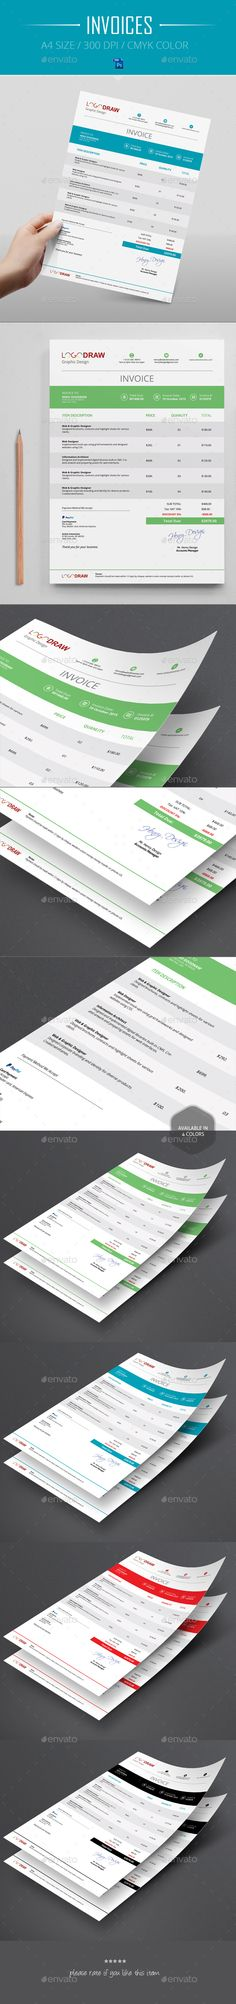 Invoices Template PSD #design Download: http://graphicriver.net/item/invoices/14076075?ref=ksioks